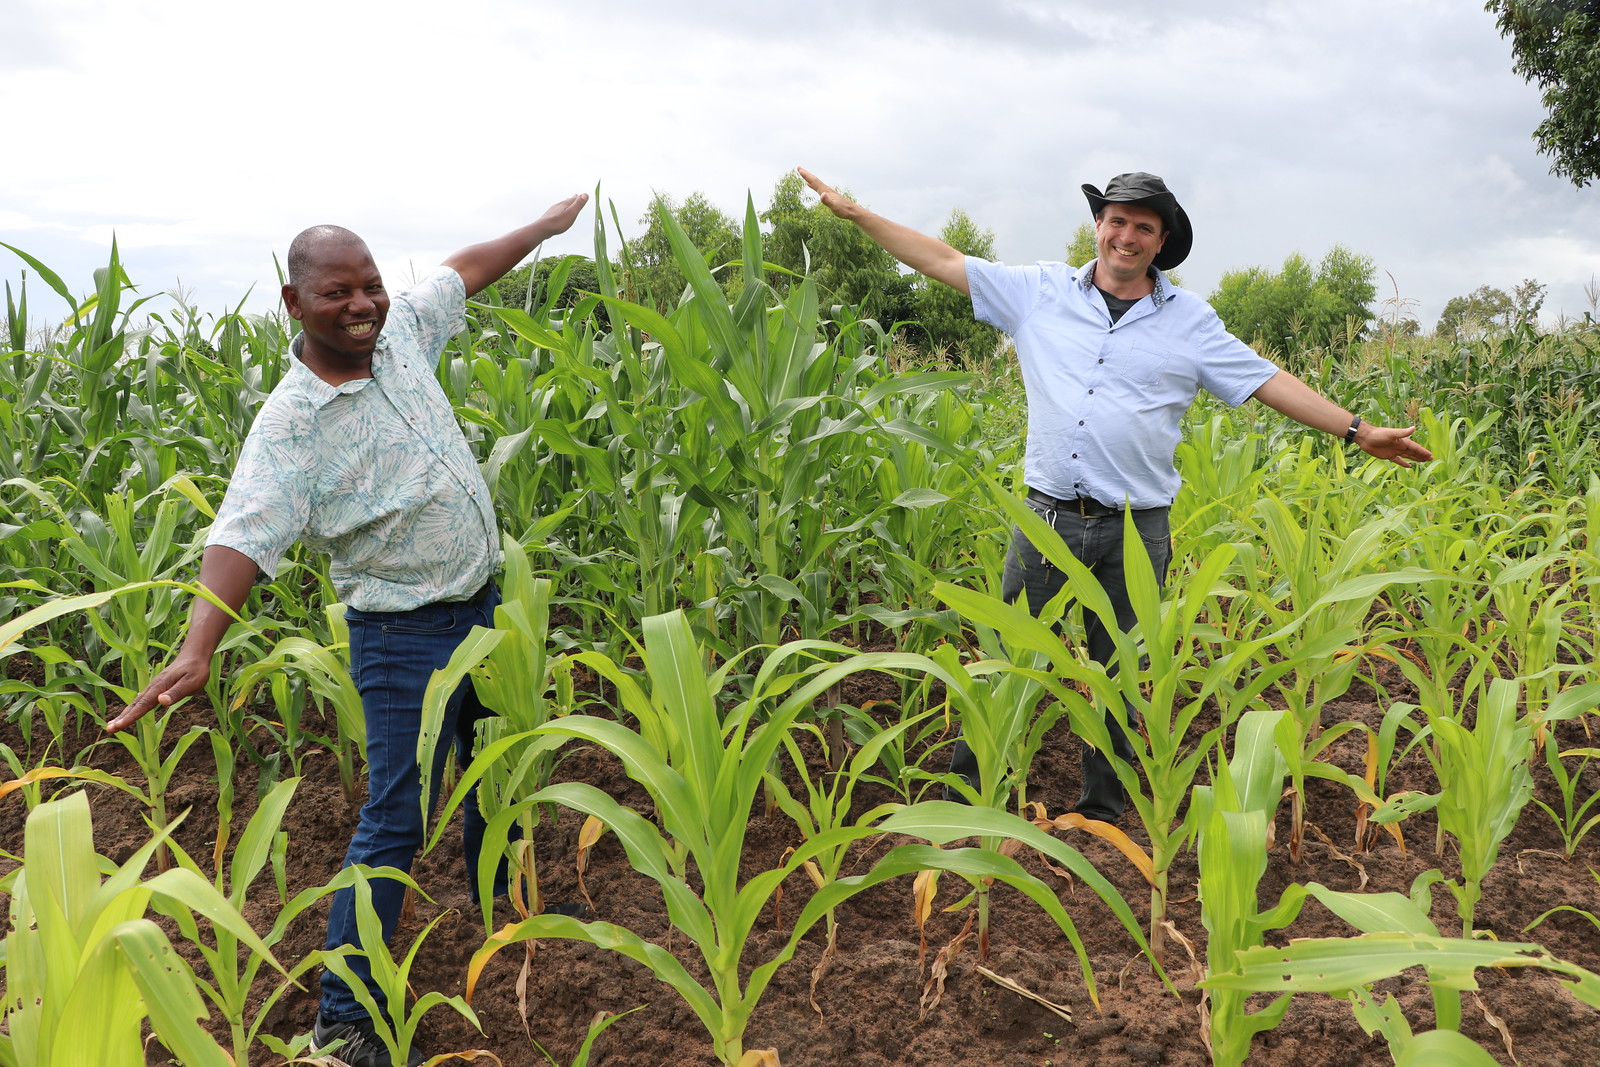 Clear as day and night! Drs Regis Chikowo (Michigan State University) and Christian Thierfelder (CIMMYT) compare maize treatments for maize/legume rotation with reduced fertilizer vs control (no maize/legume rotation, no fertilizer). Photo credit: Eveline